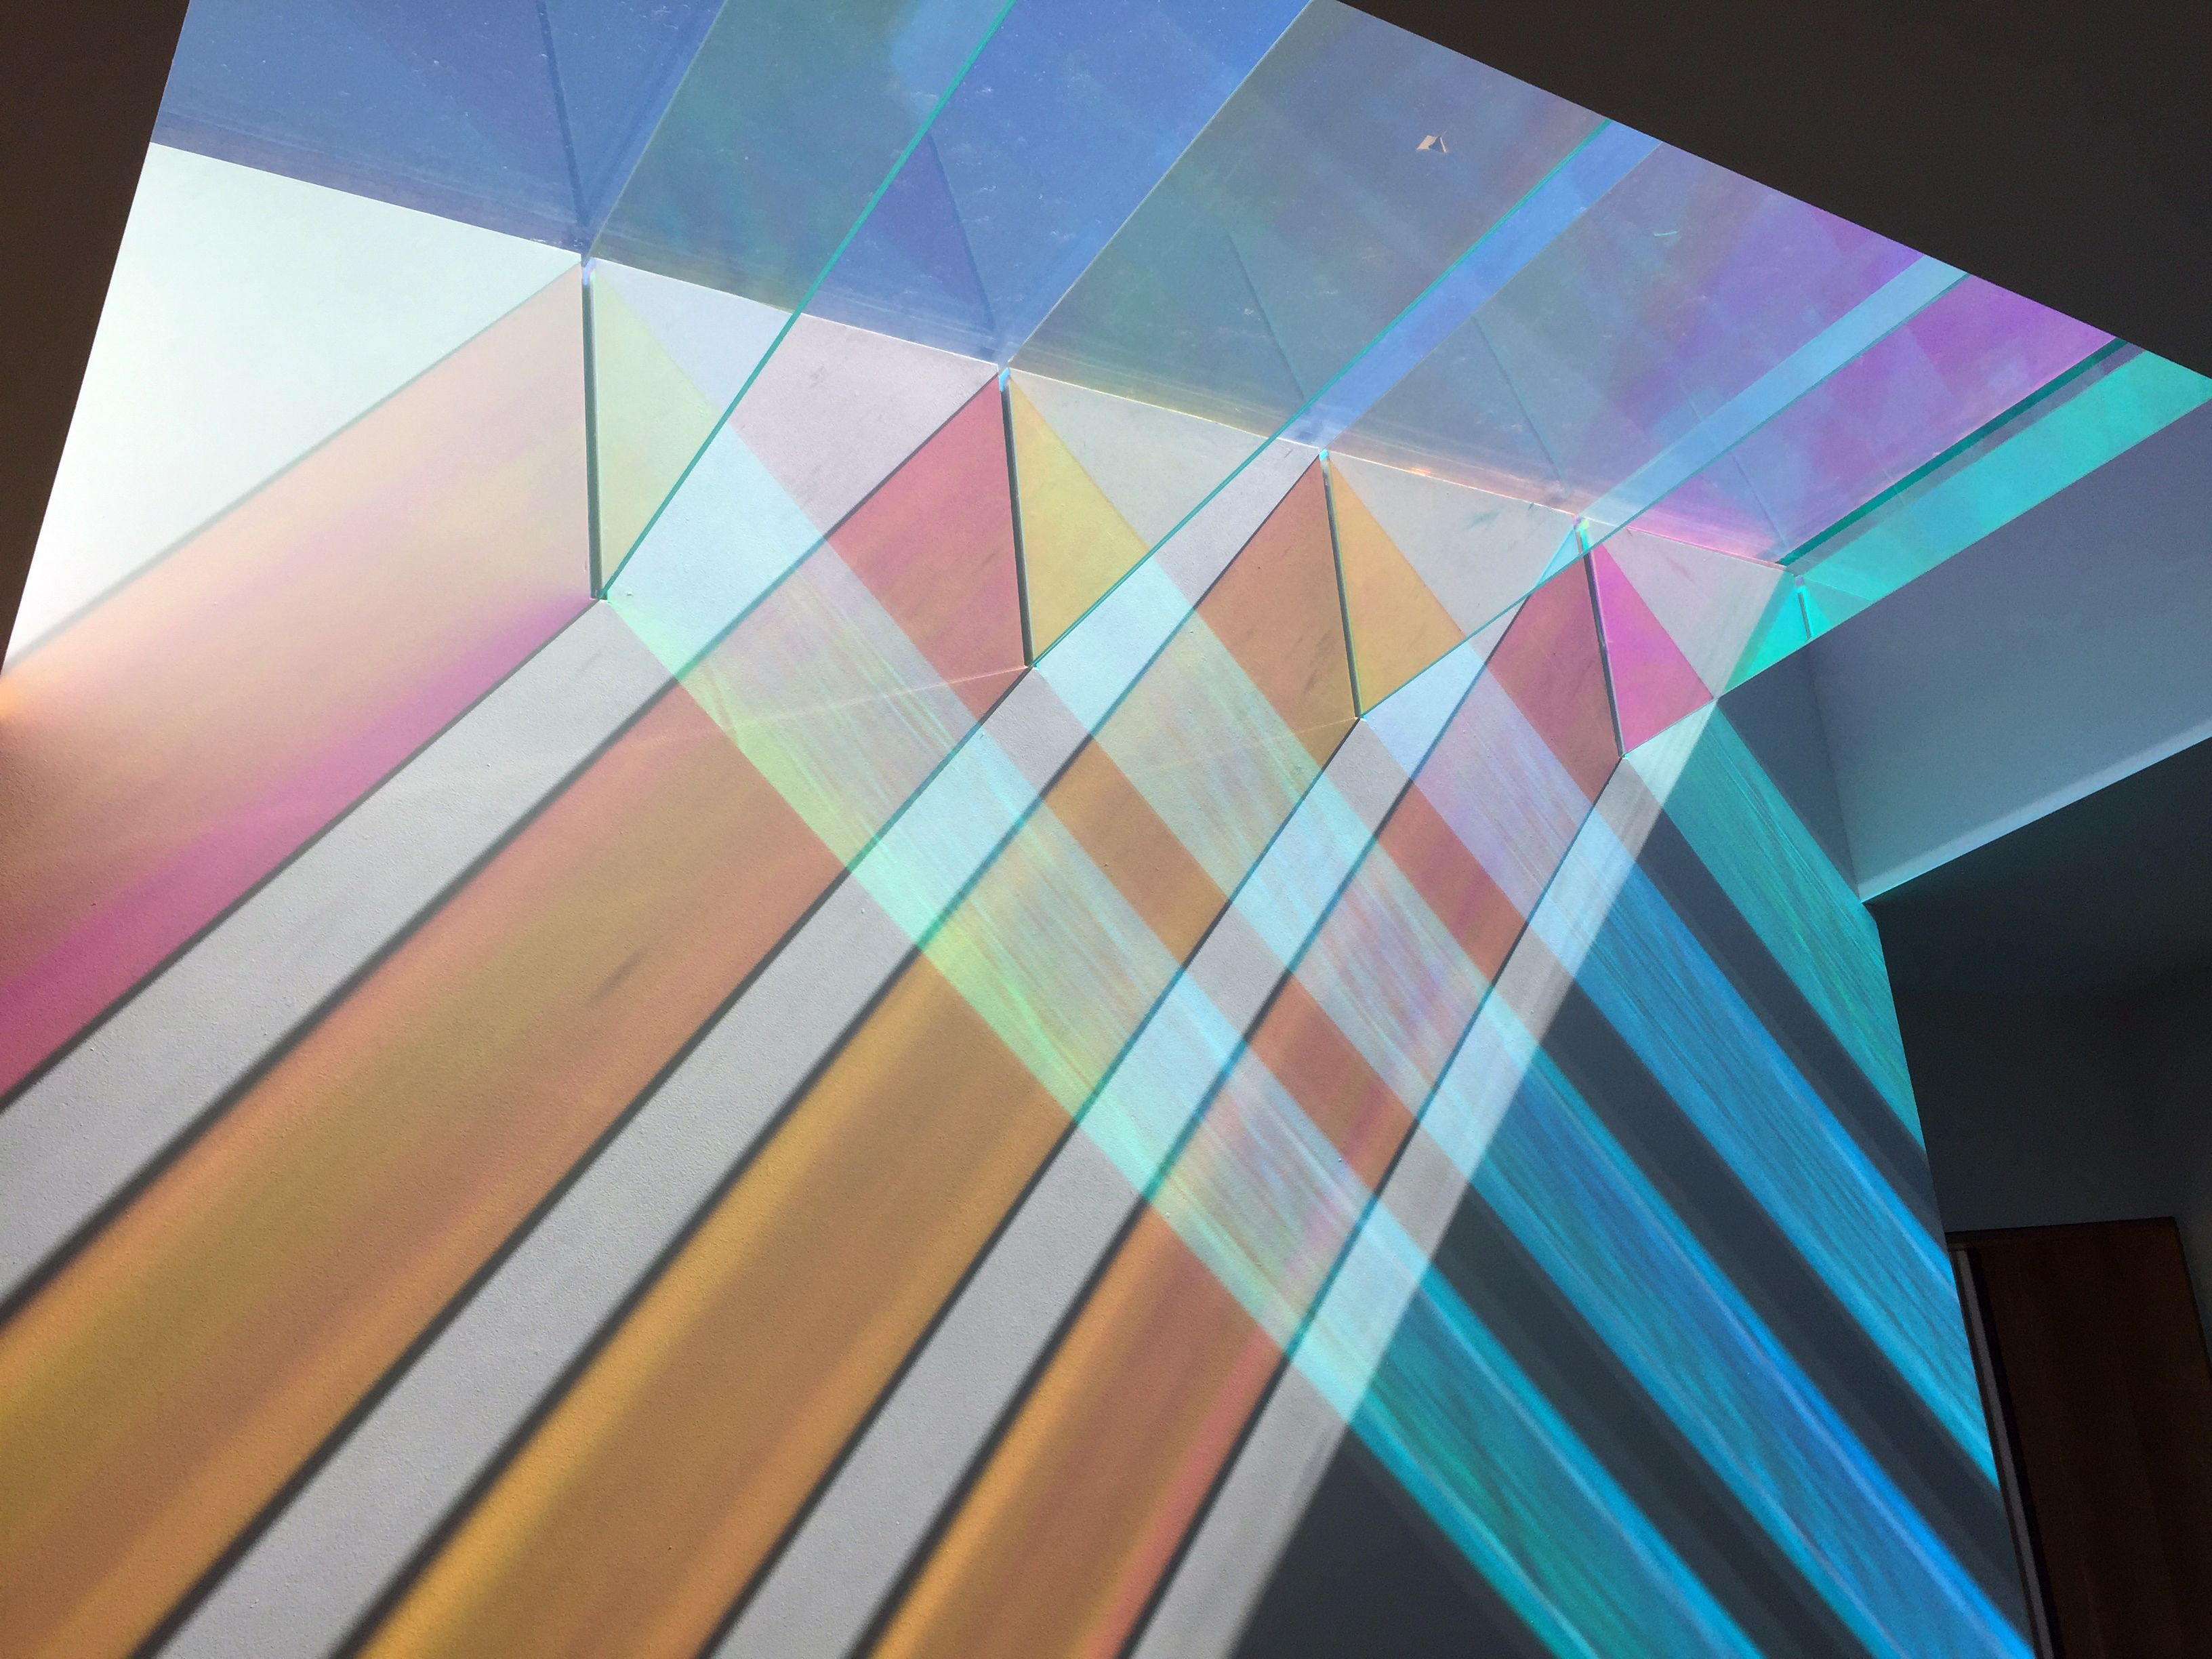 hight resolution of diacroic glass materials dichroic glass sunlight or electrical illumination